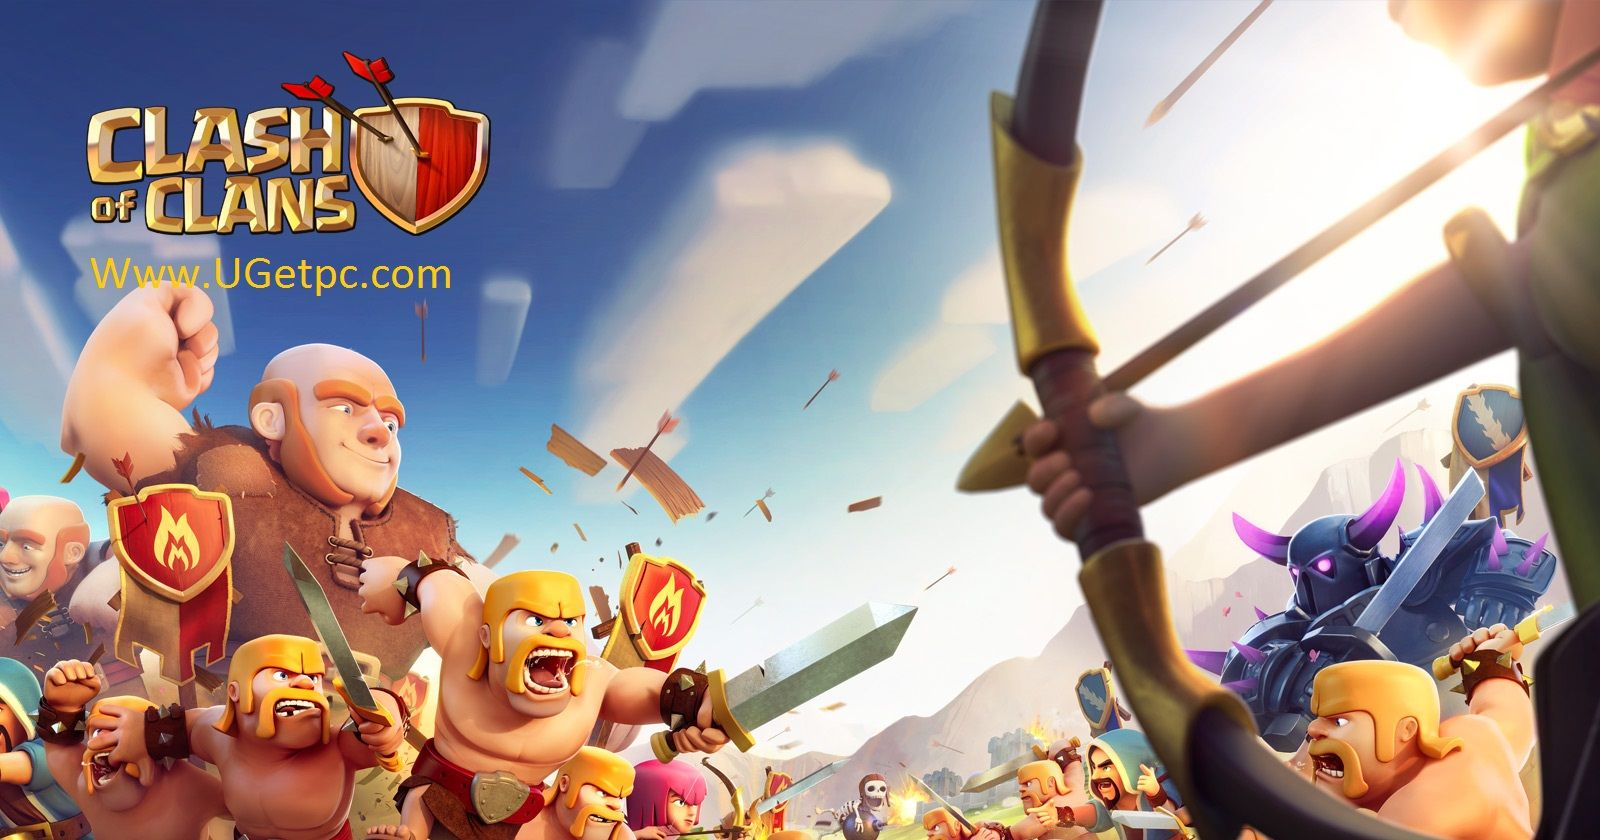 Clash of Clans Download APK Latest Version Here Clash of